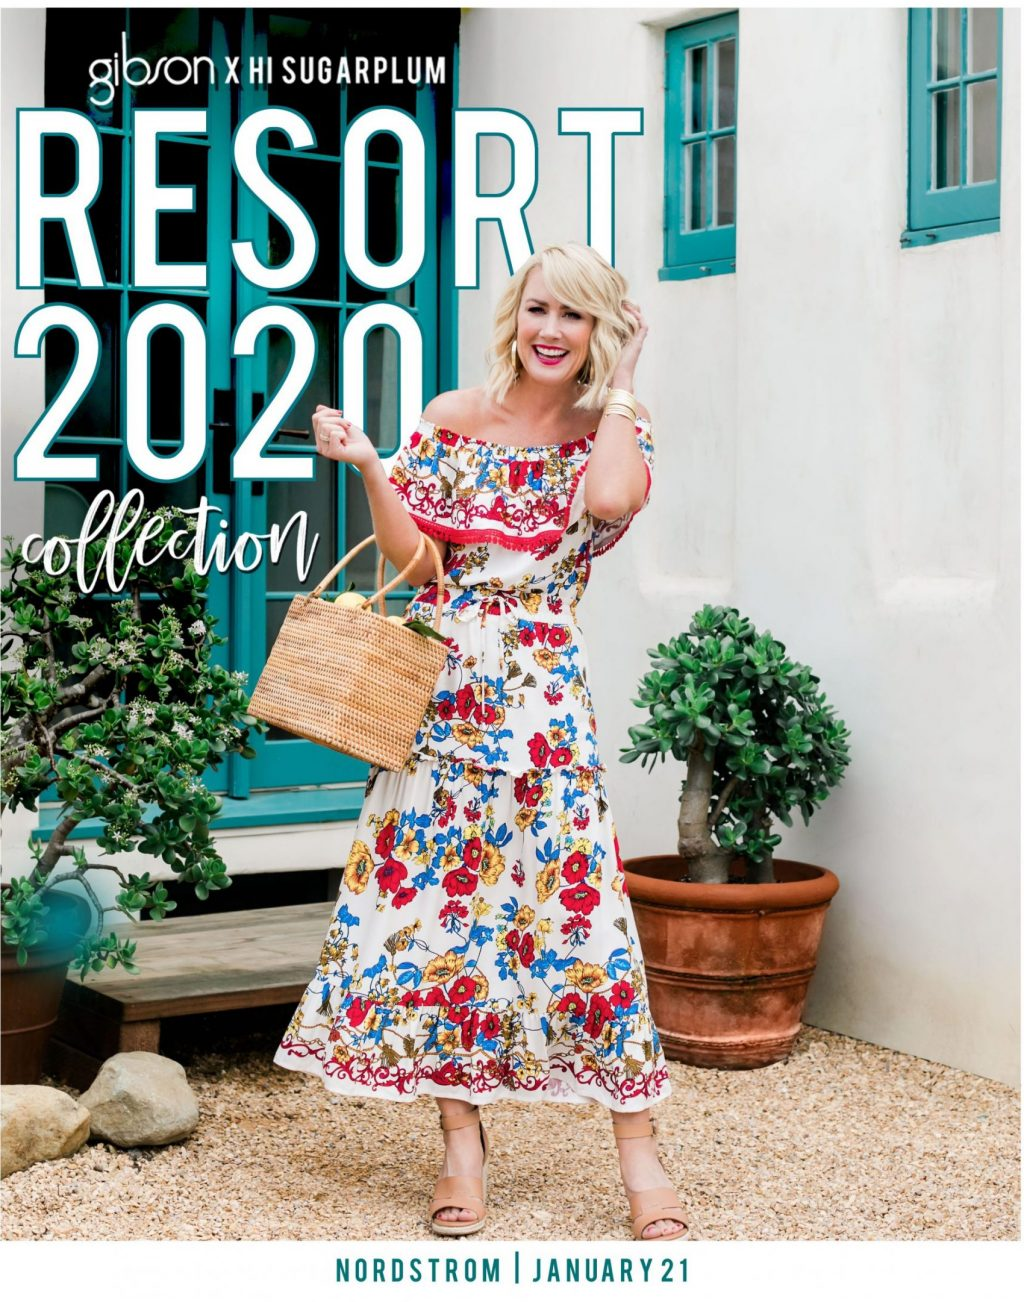 Gibson x hi sugarplum resort 2020 collection